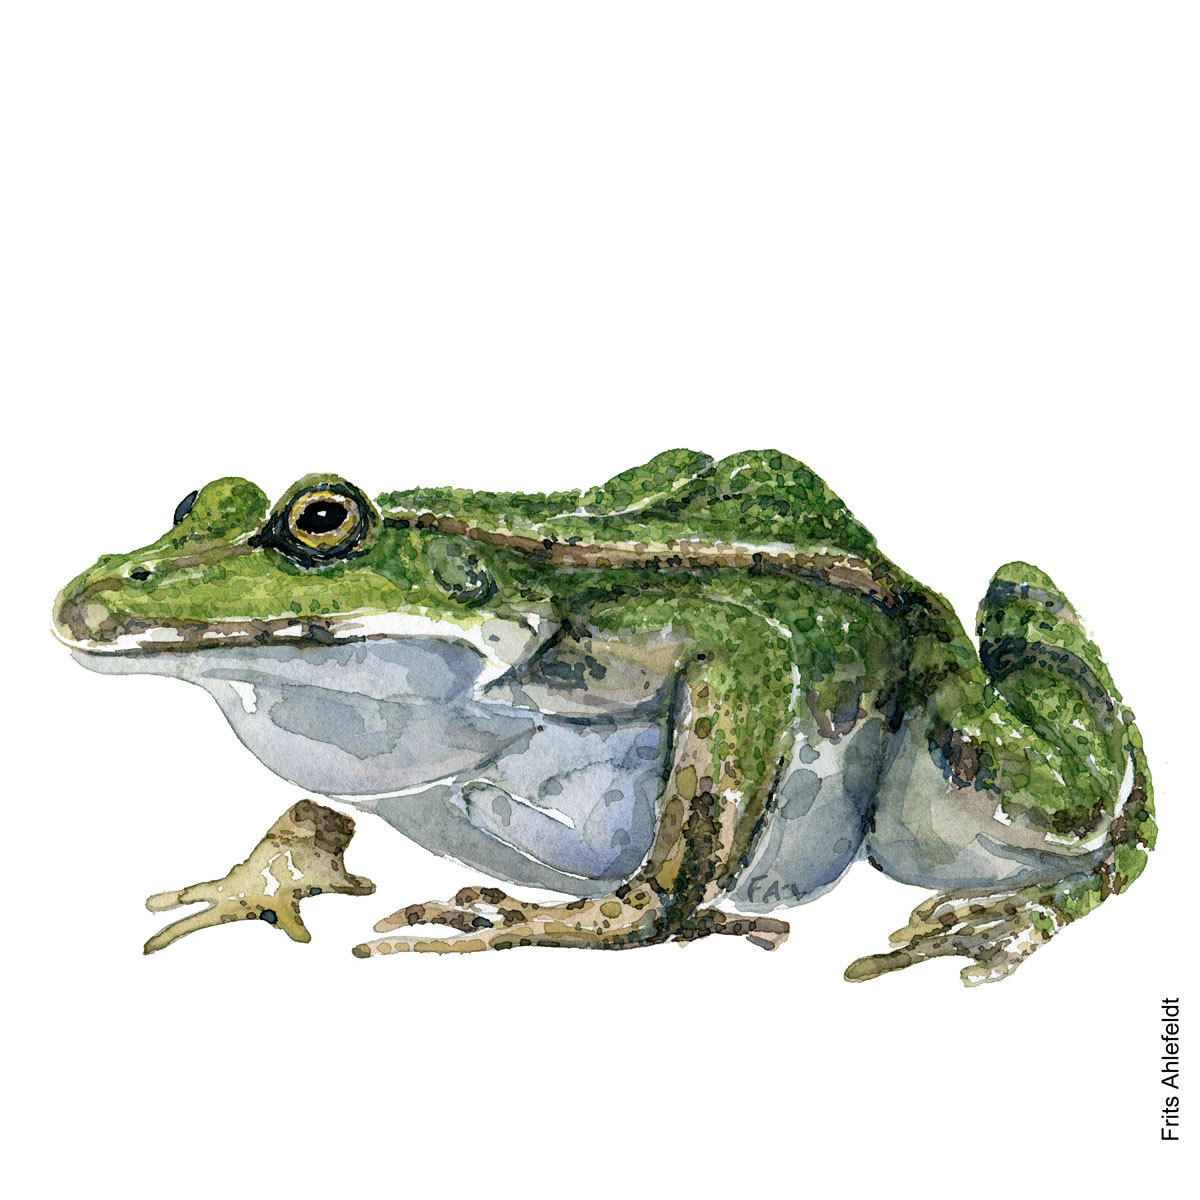 Illustration of edible frog side view. Frog watercolor handmade by Frits Ahlefeldt